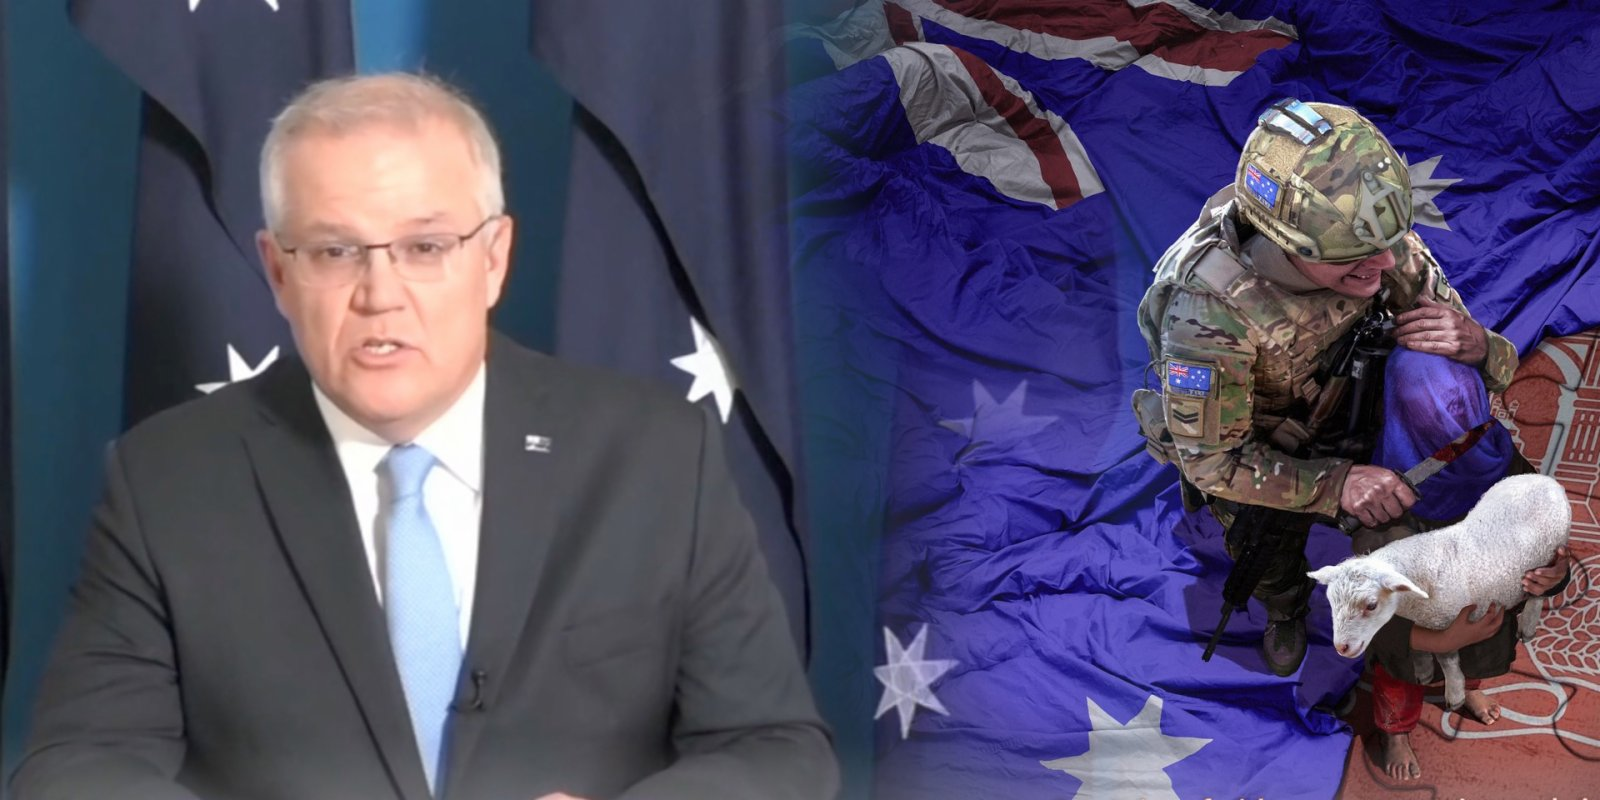 Watch This | Australian PM takes aim at Chinese caricature instead of self-examination of war crime